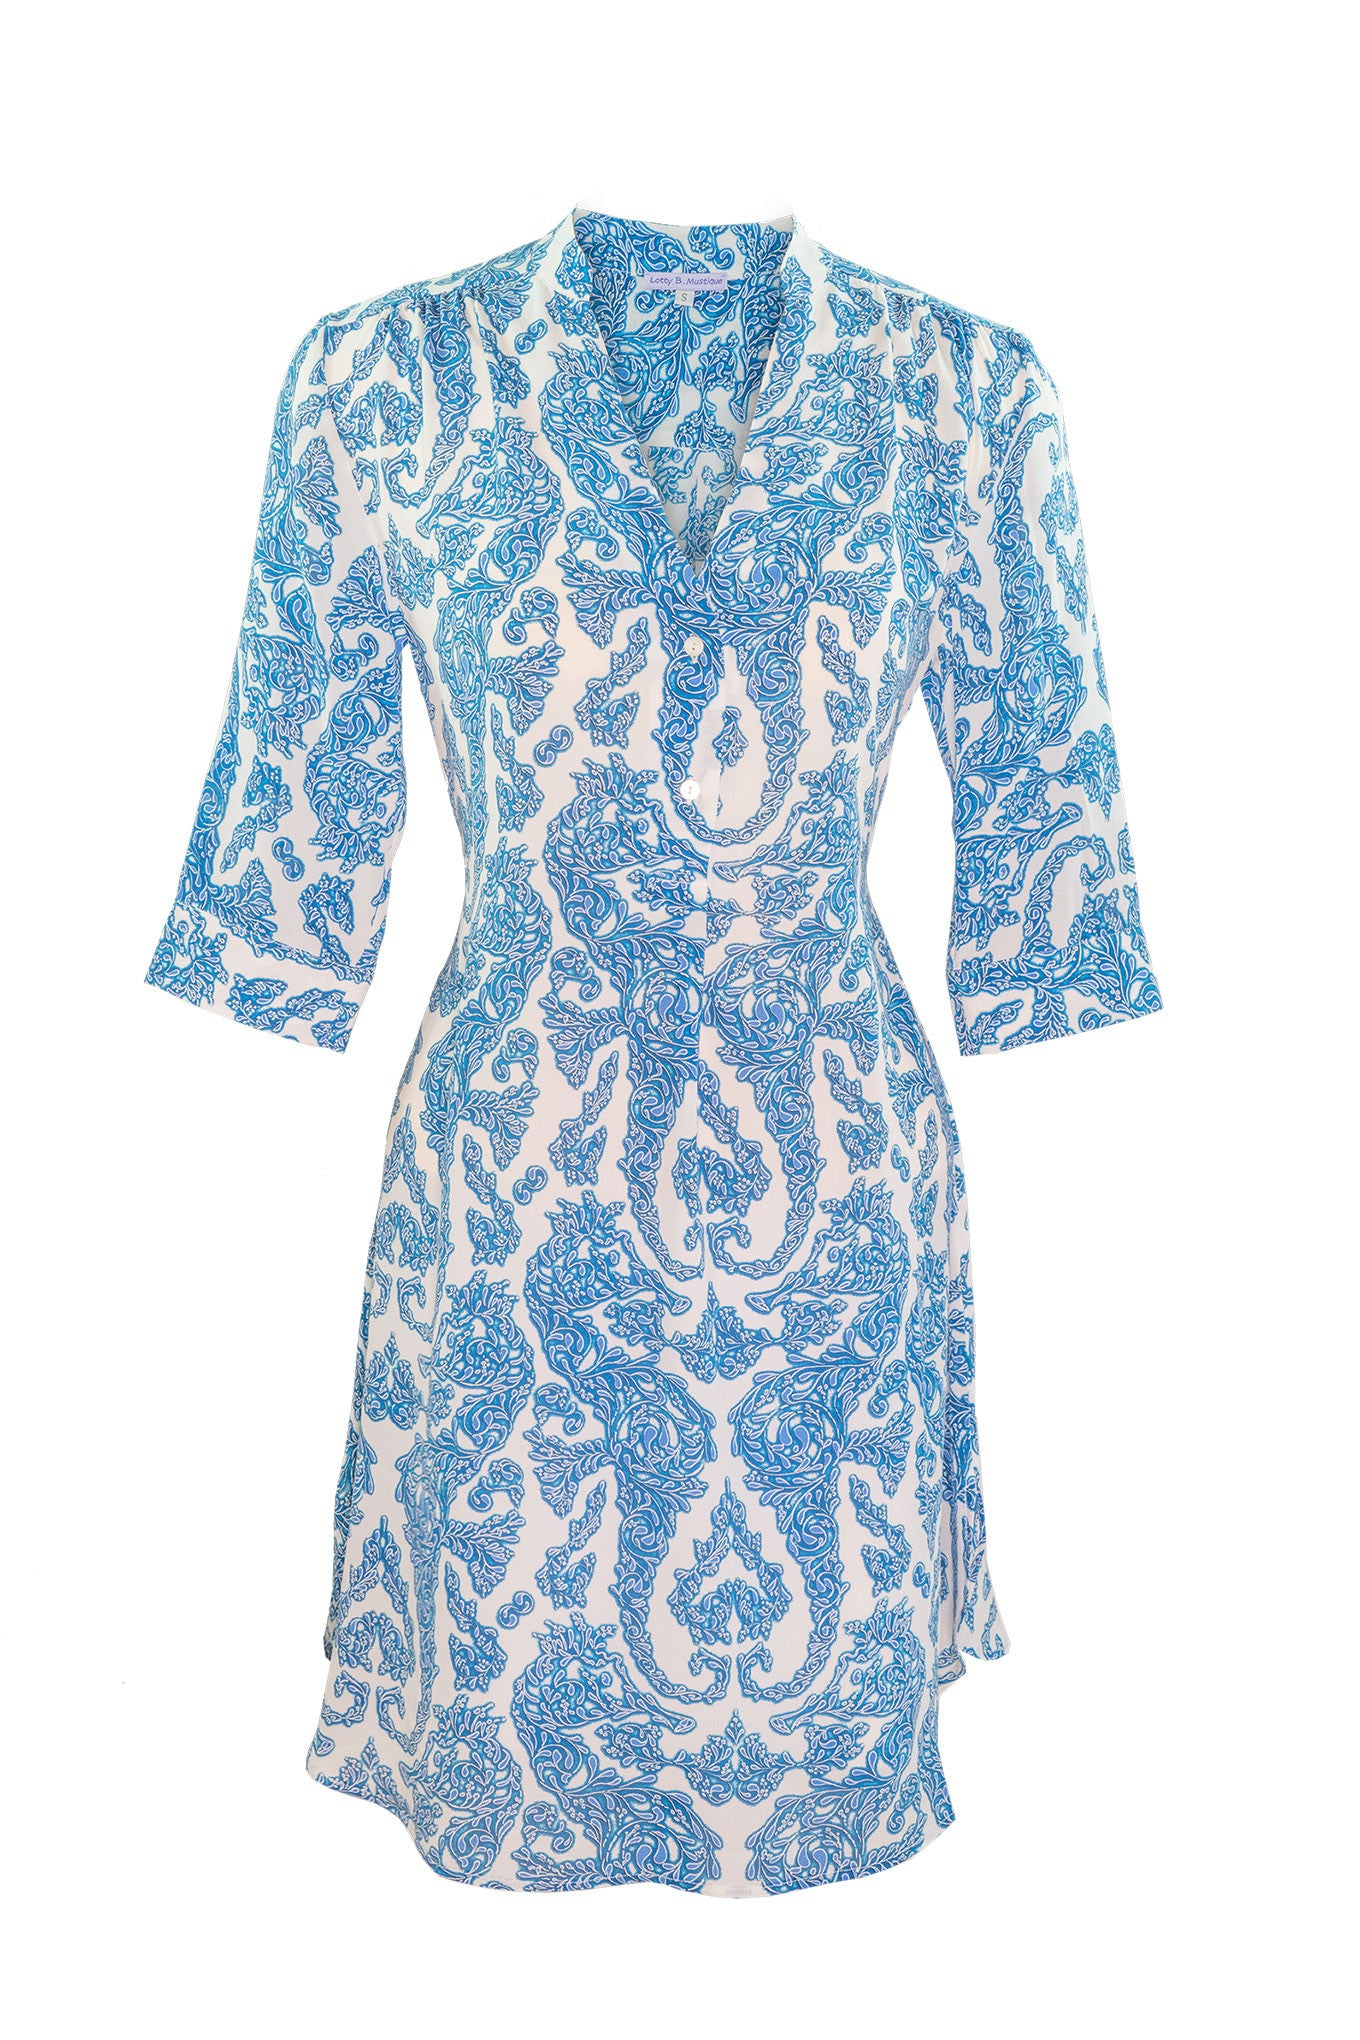 Lotty B Flared Dress in Silk Crepe-de-Chine (Seahorse, Blue)